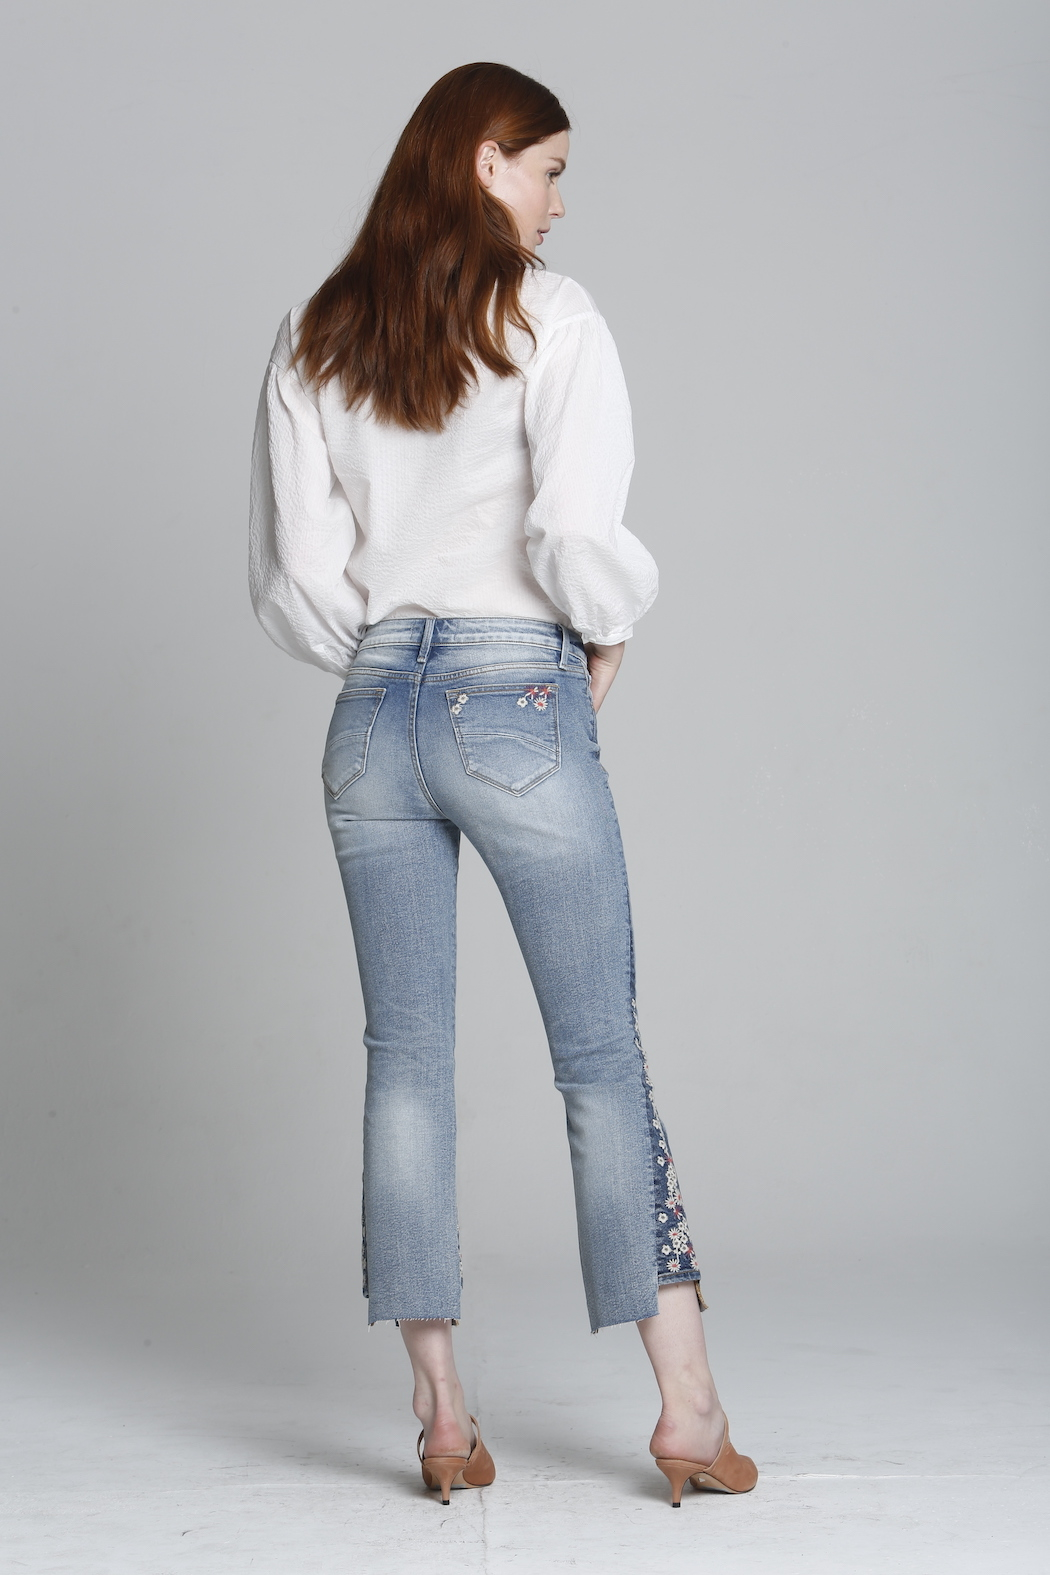 Driftwood Indie X Berry Jam Embroidered Jeans - Front Full Image